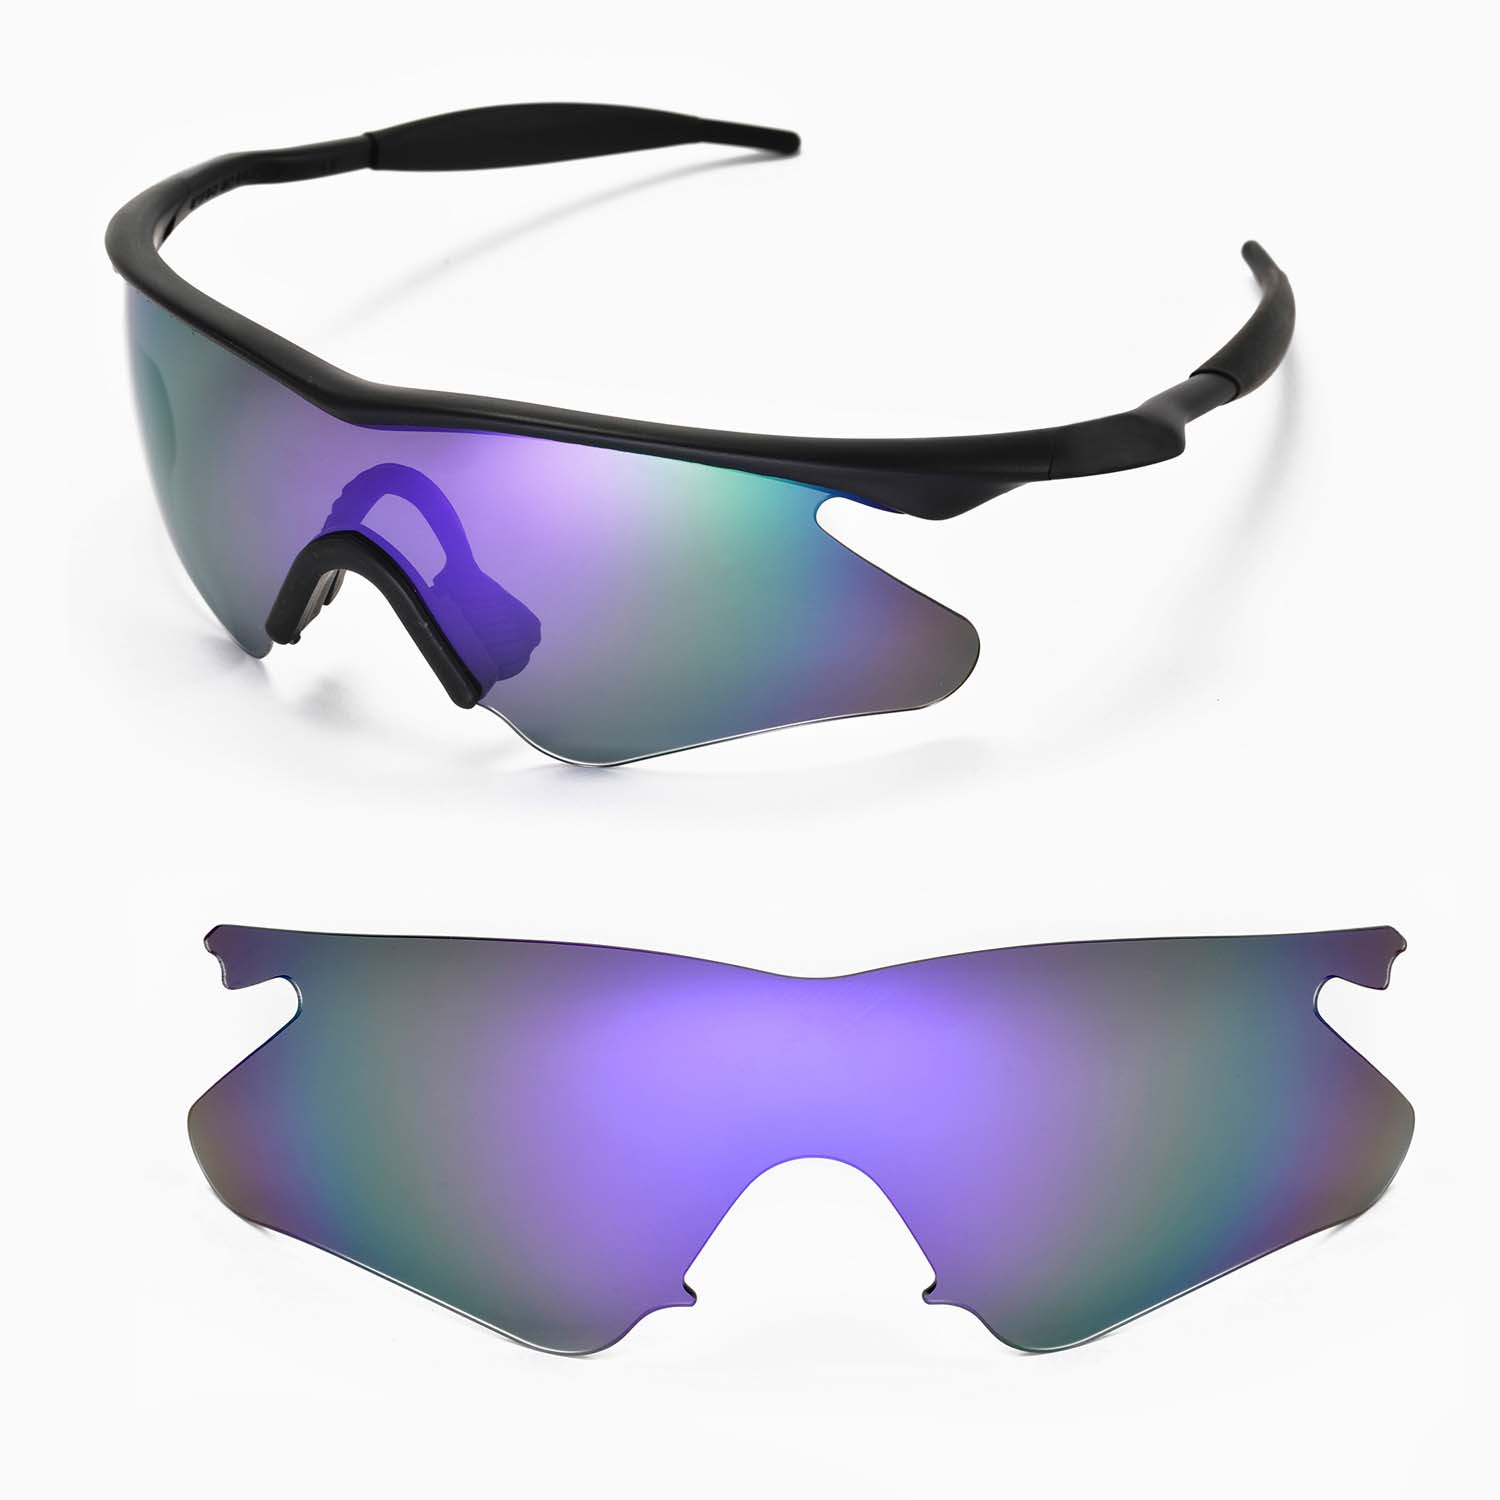 new wl polarized purple sunglasses lenses for oakley m frame heater rh ebay com